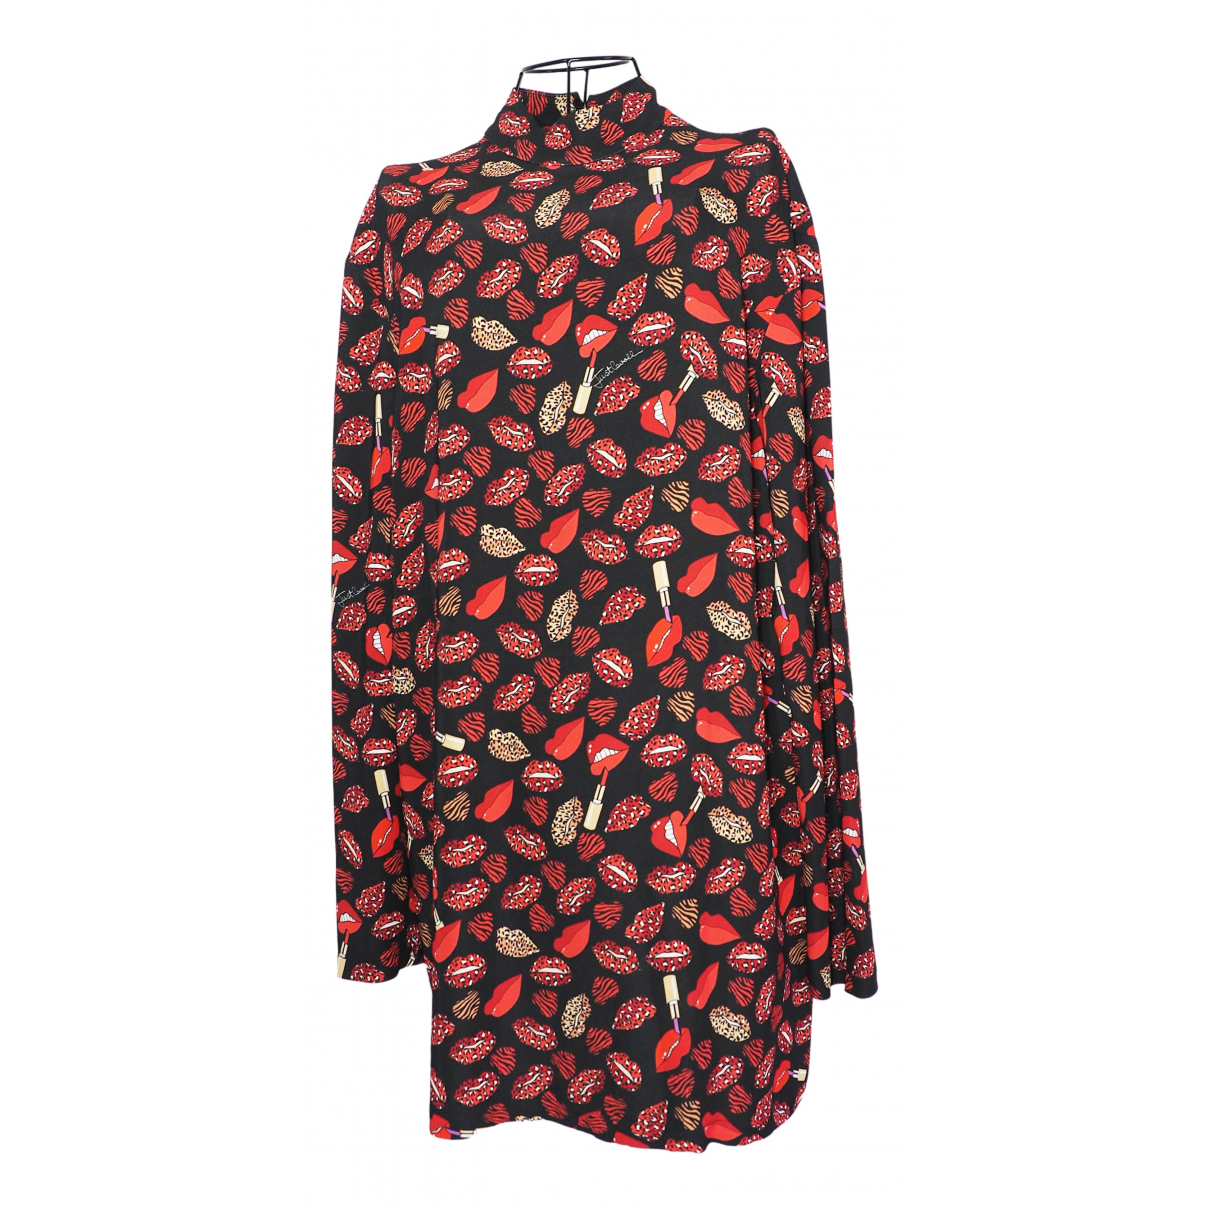 Just Cavalli \N Red dress for Women 44 IT